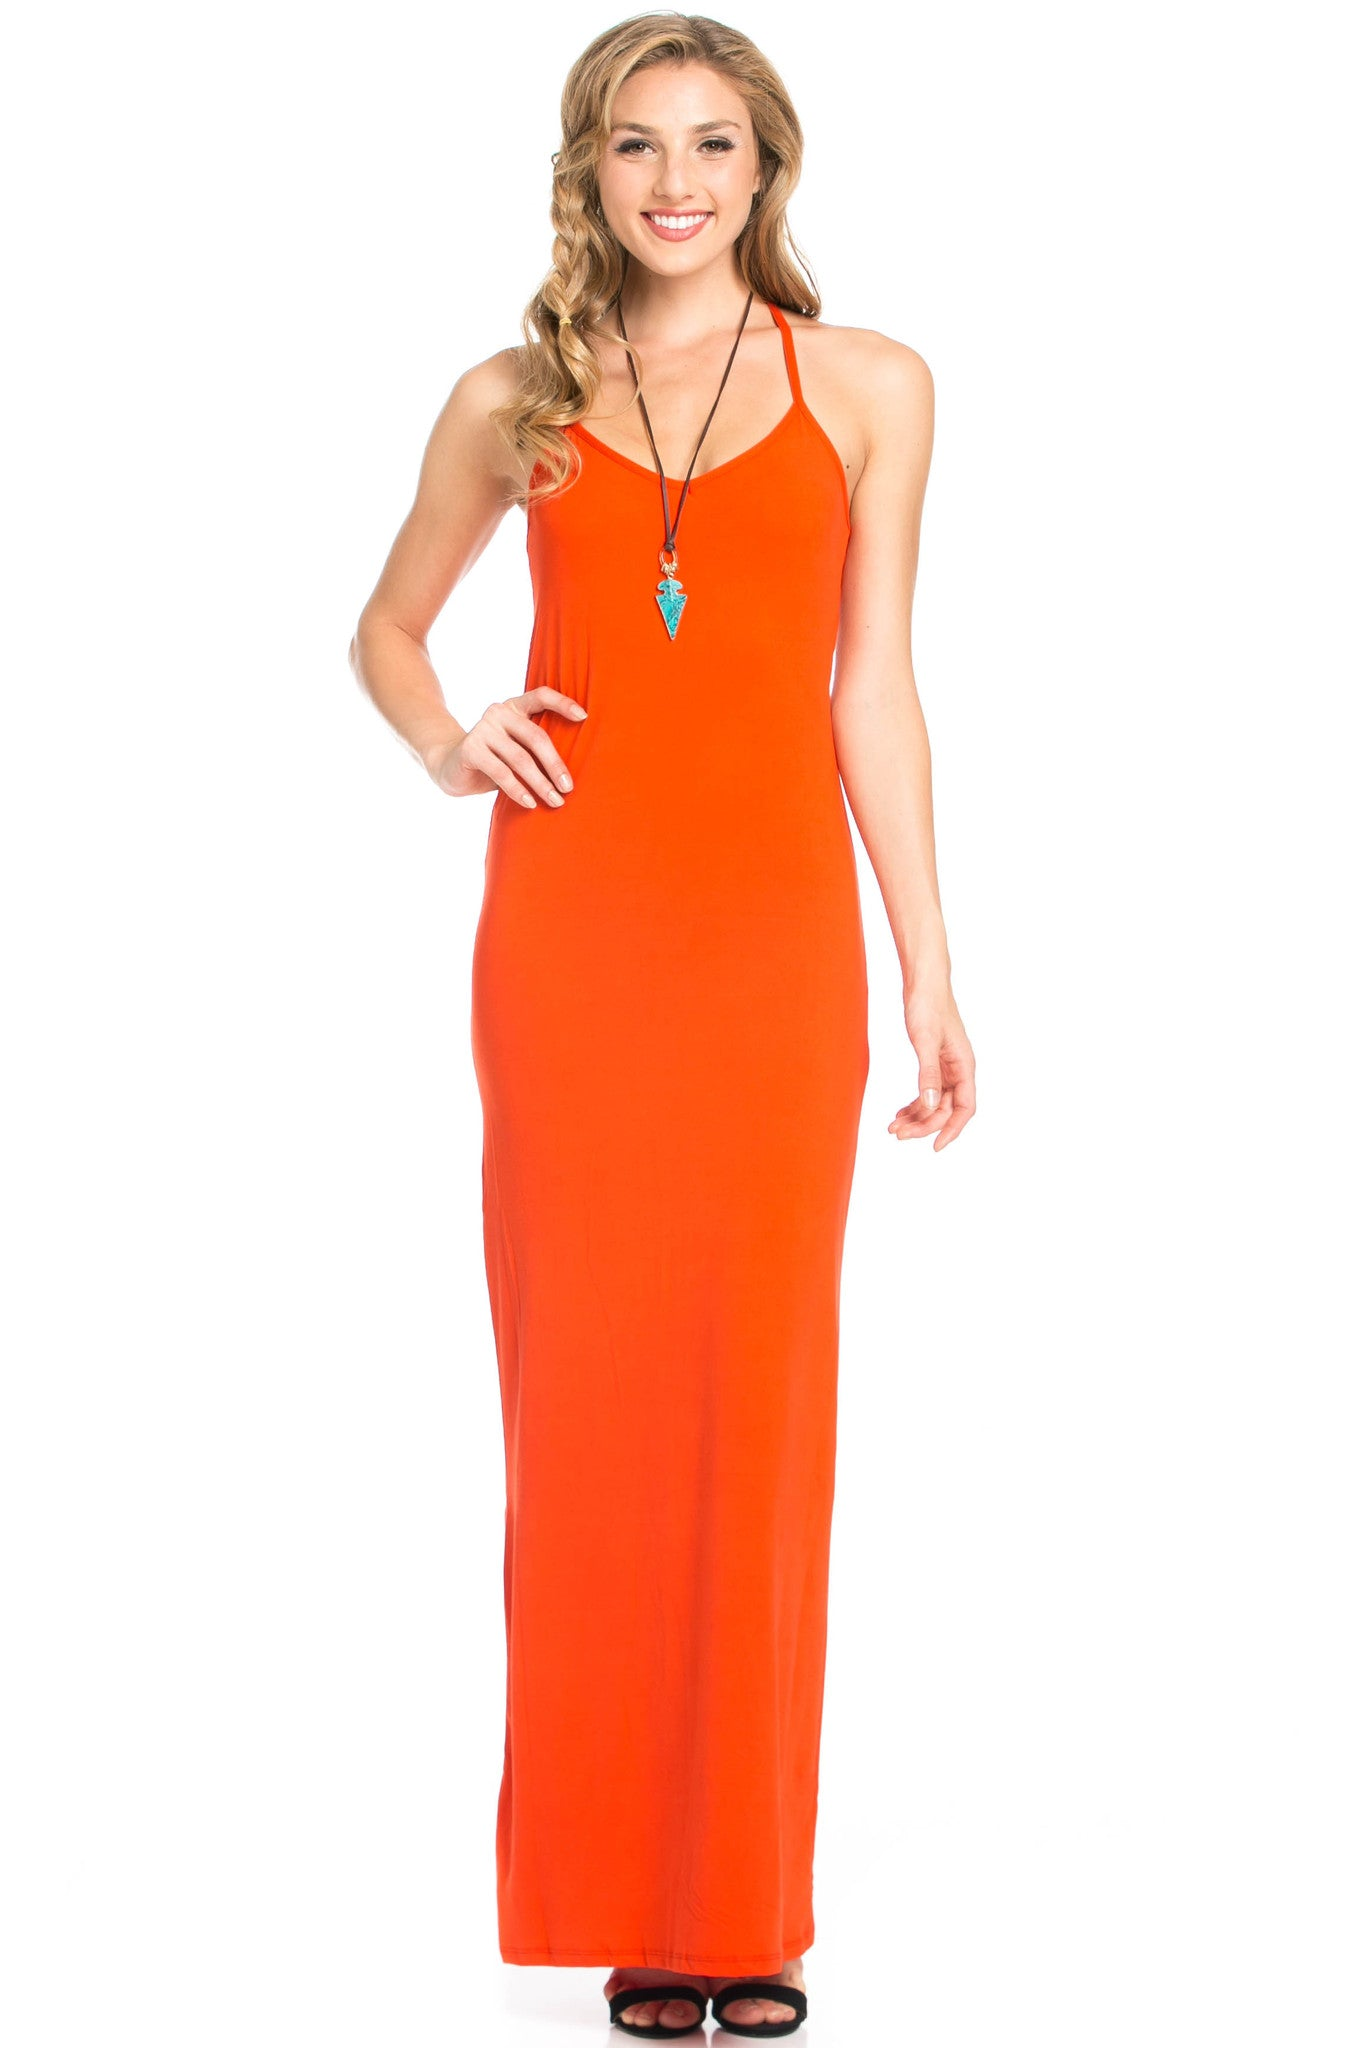 Micro Suede Tomato Maxi Dress - Dresses - My Yuccie - 5